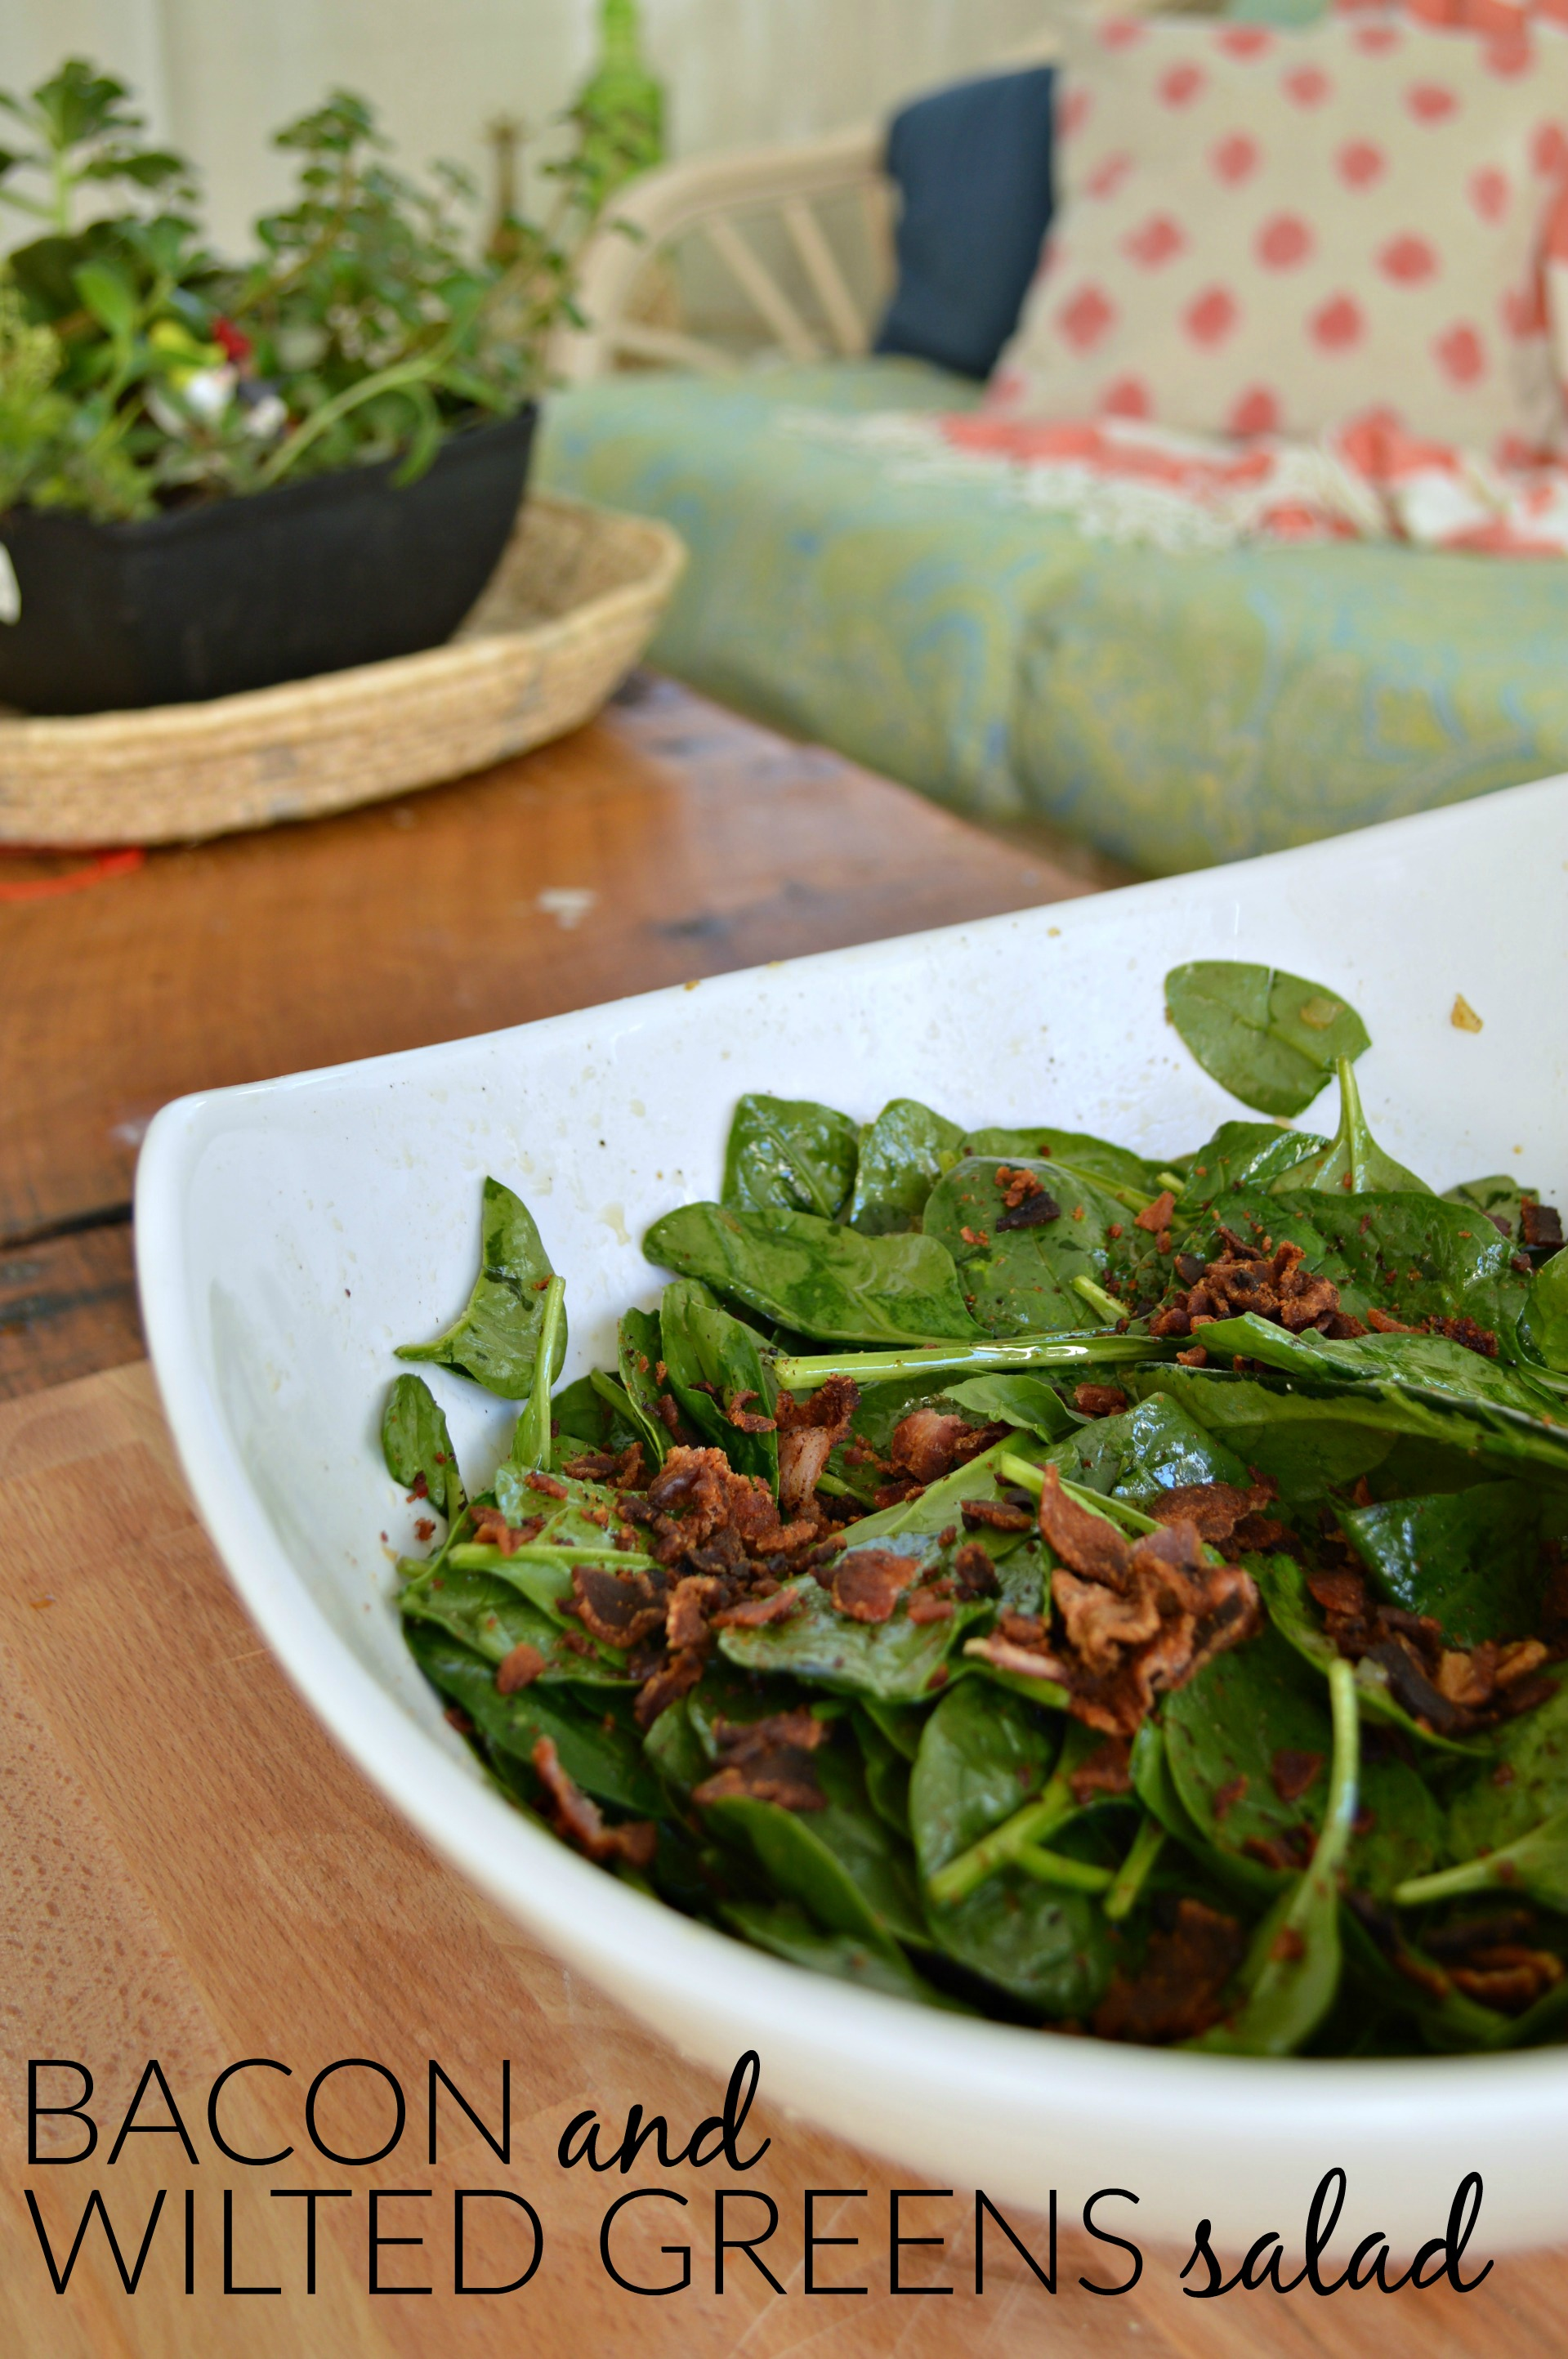 How to Make Bacon and Wilted Greens Salad